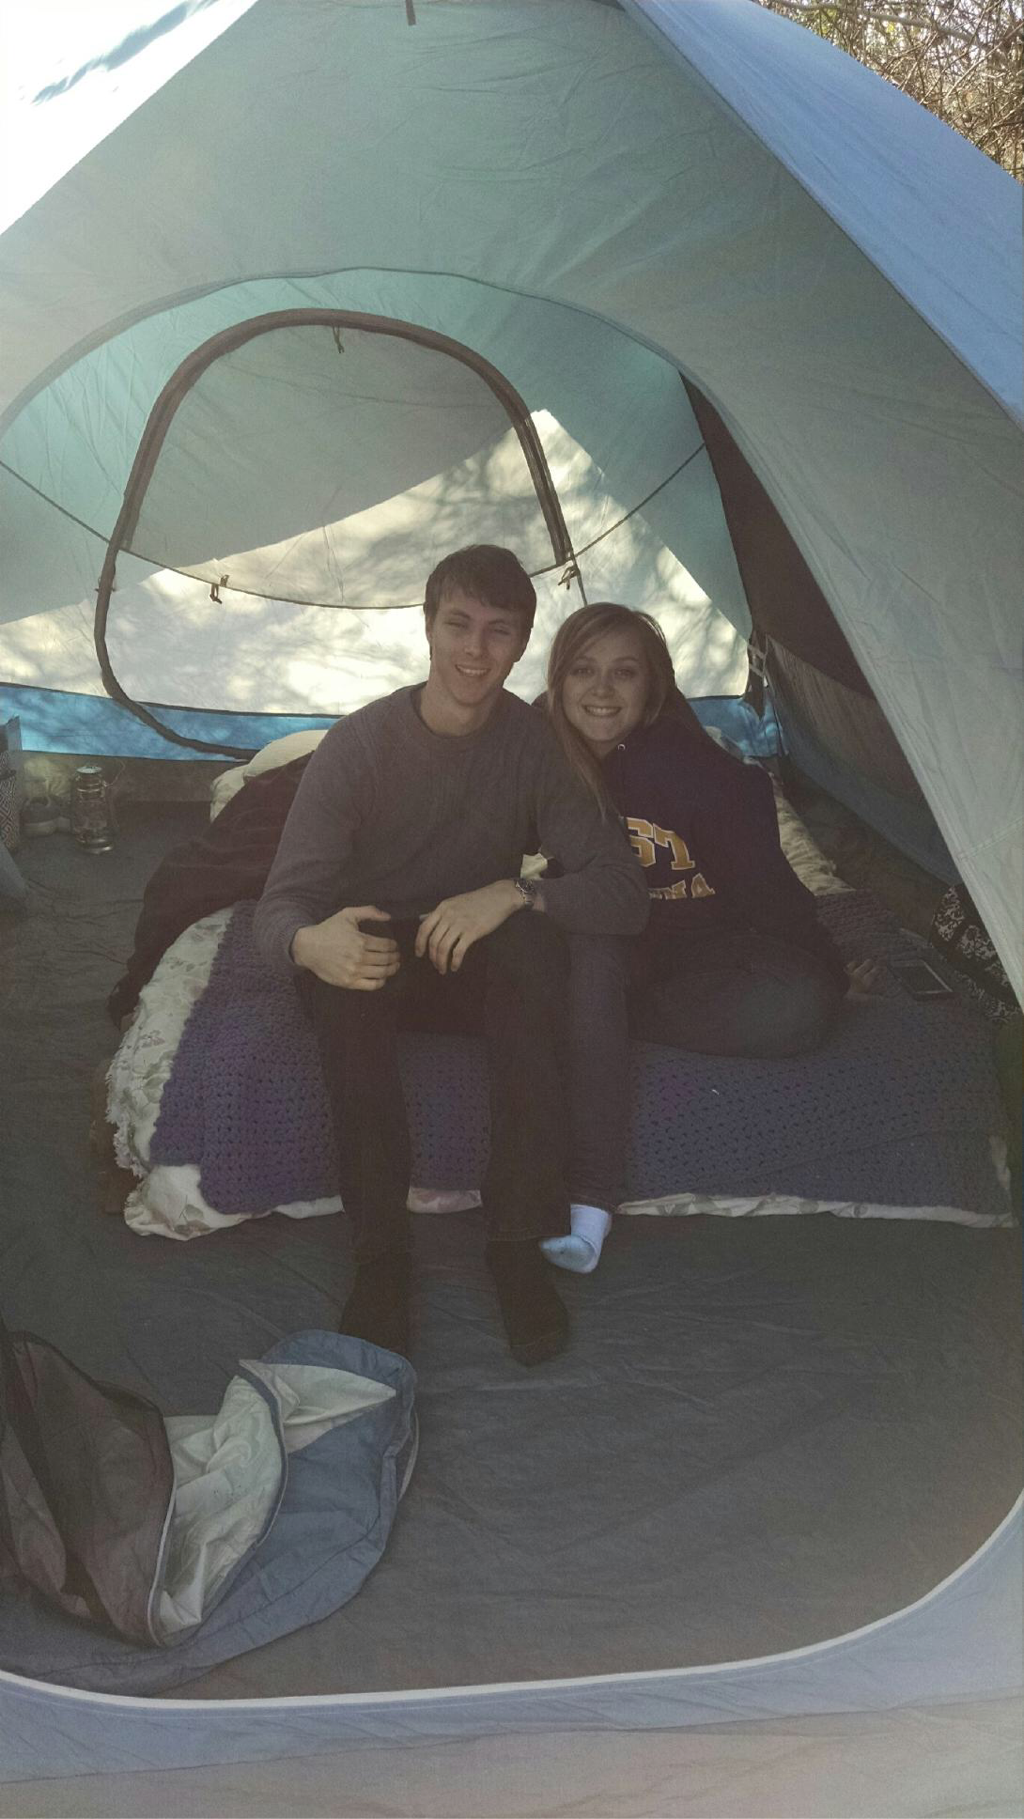 Zack and I Camping in our tent